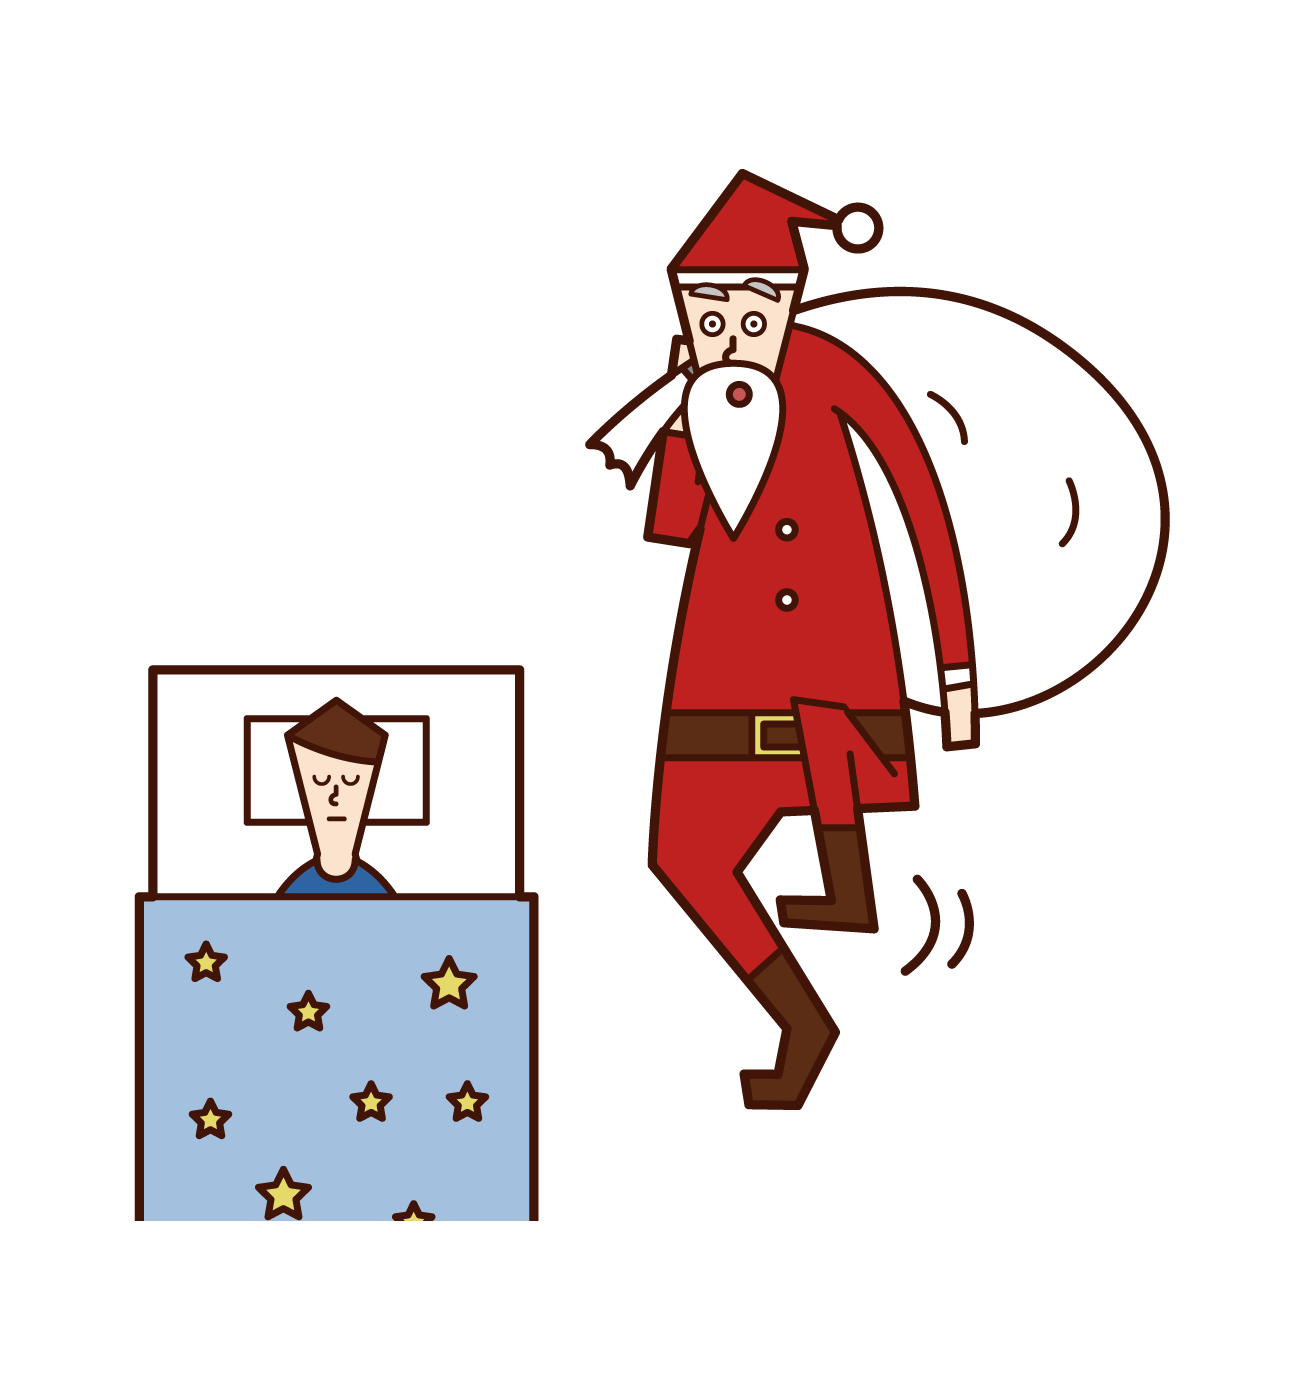 Illustration of Santa Claus giving a present to a sleeping child